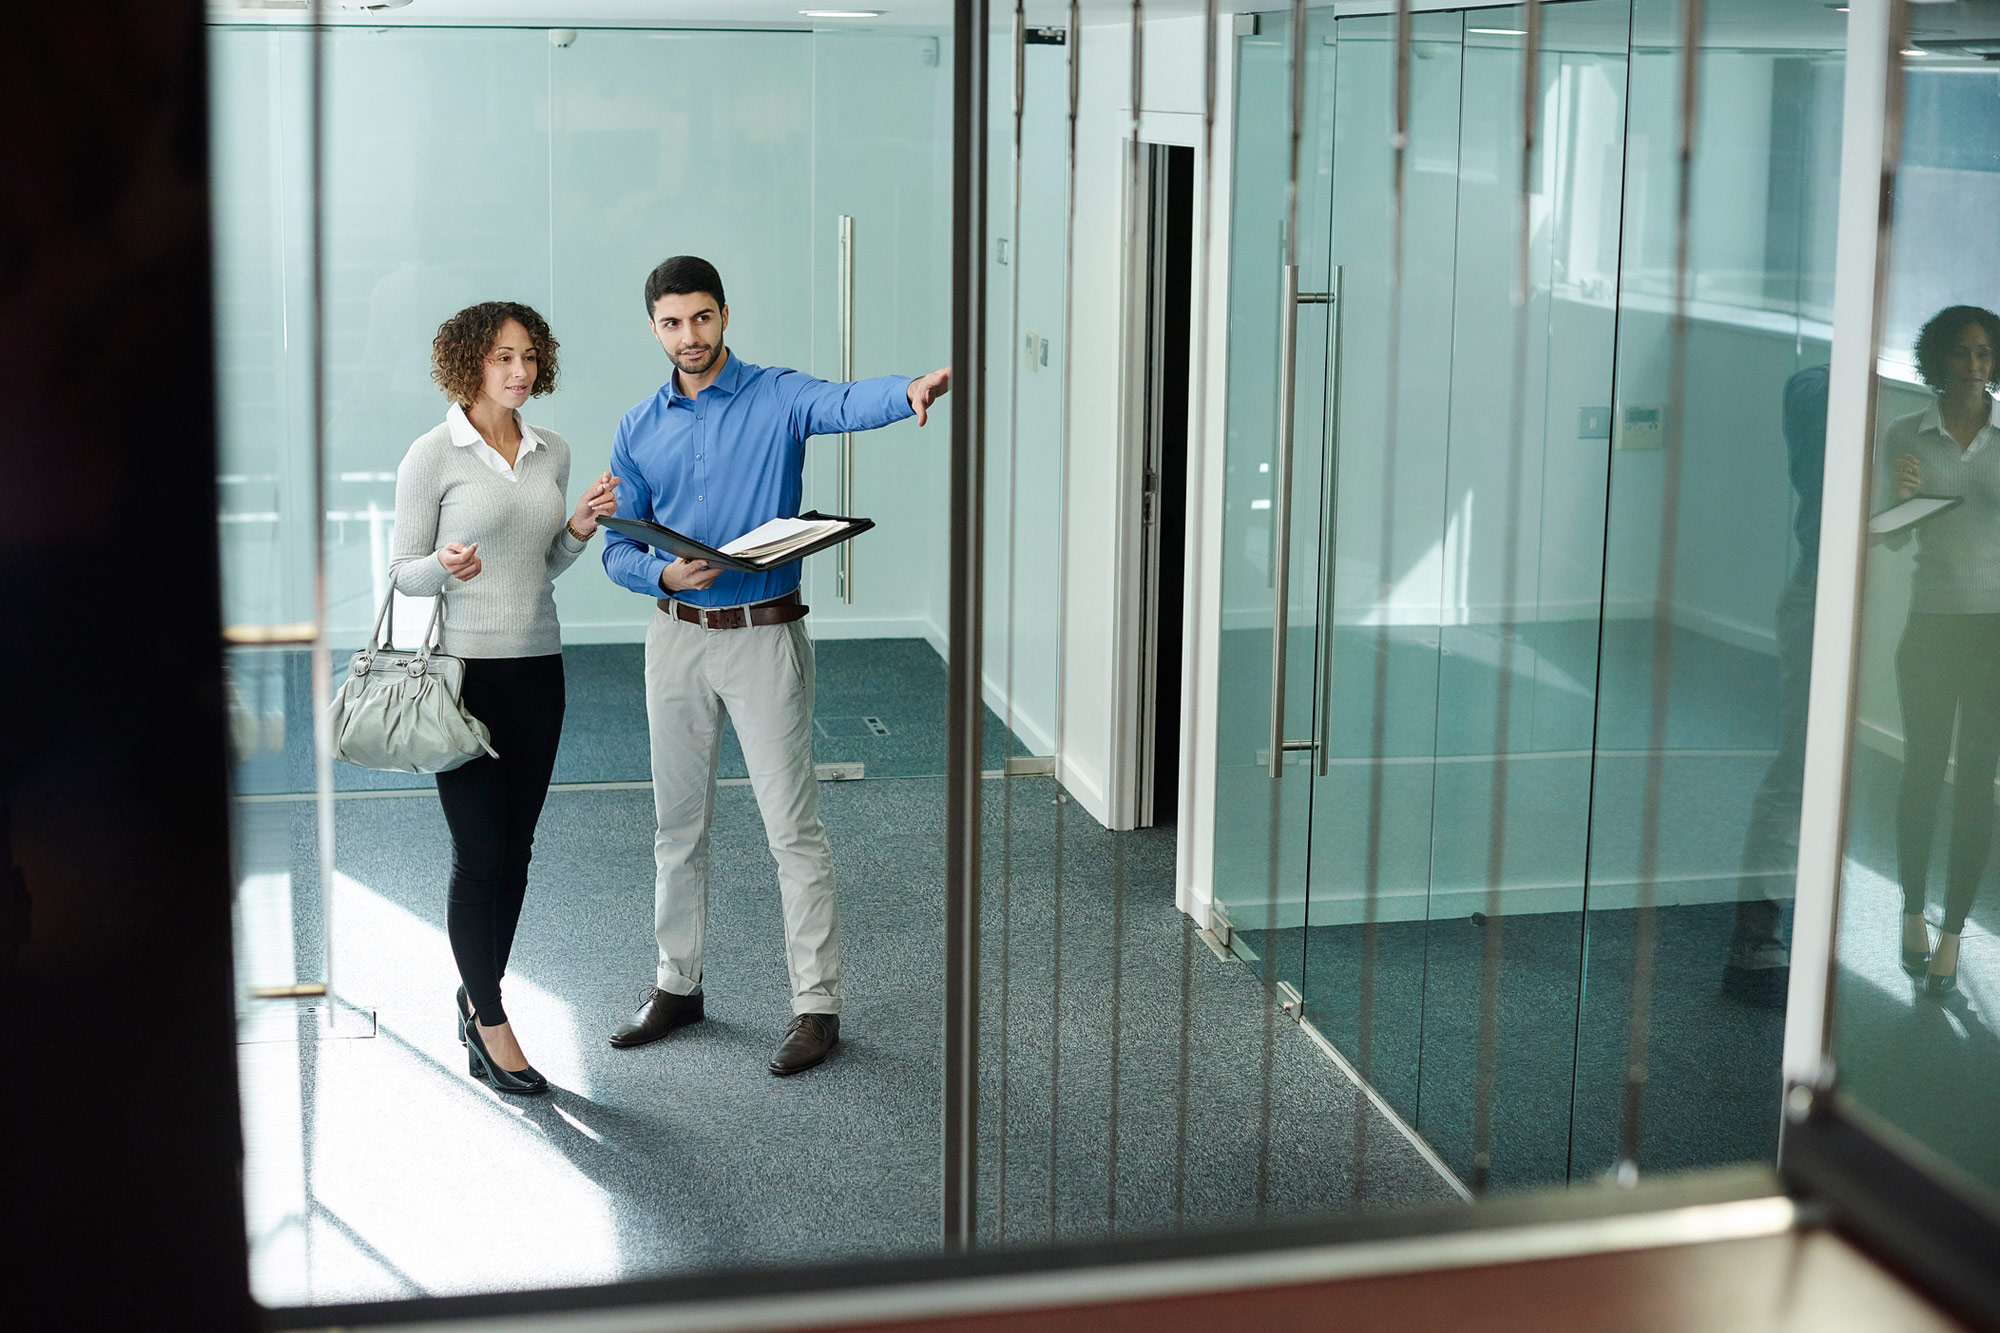 Benefits of Buying Penticton Commercial Real Estate